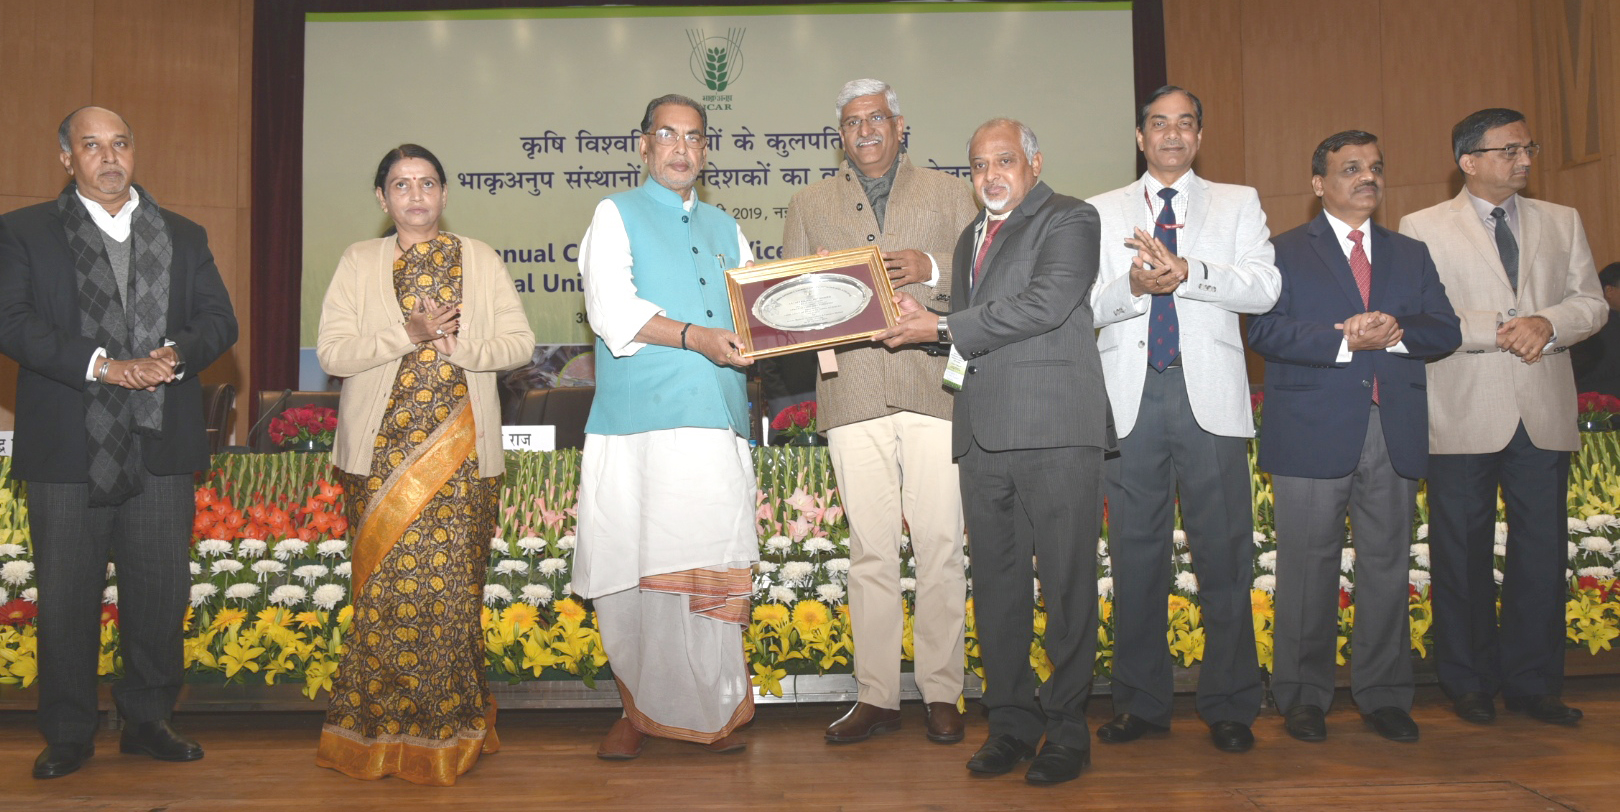 UHS Bagalkot secured 1st Position with award of 45 PG scholarships under category Horticulture and Forestry during AIEEA-PG 2018